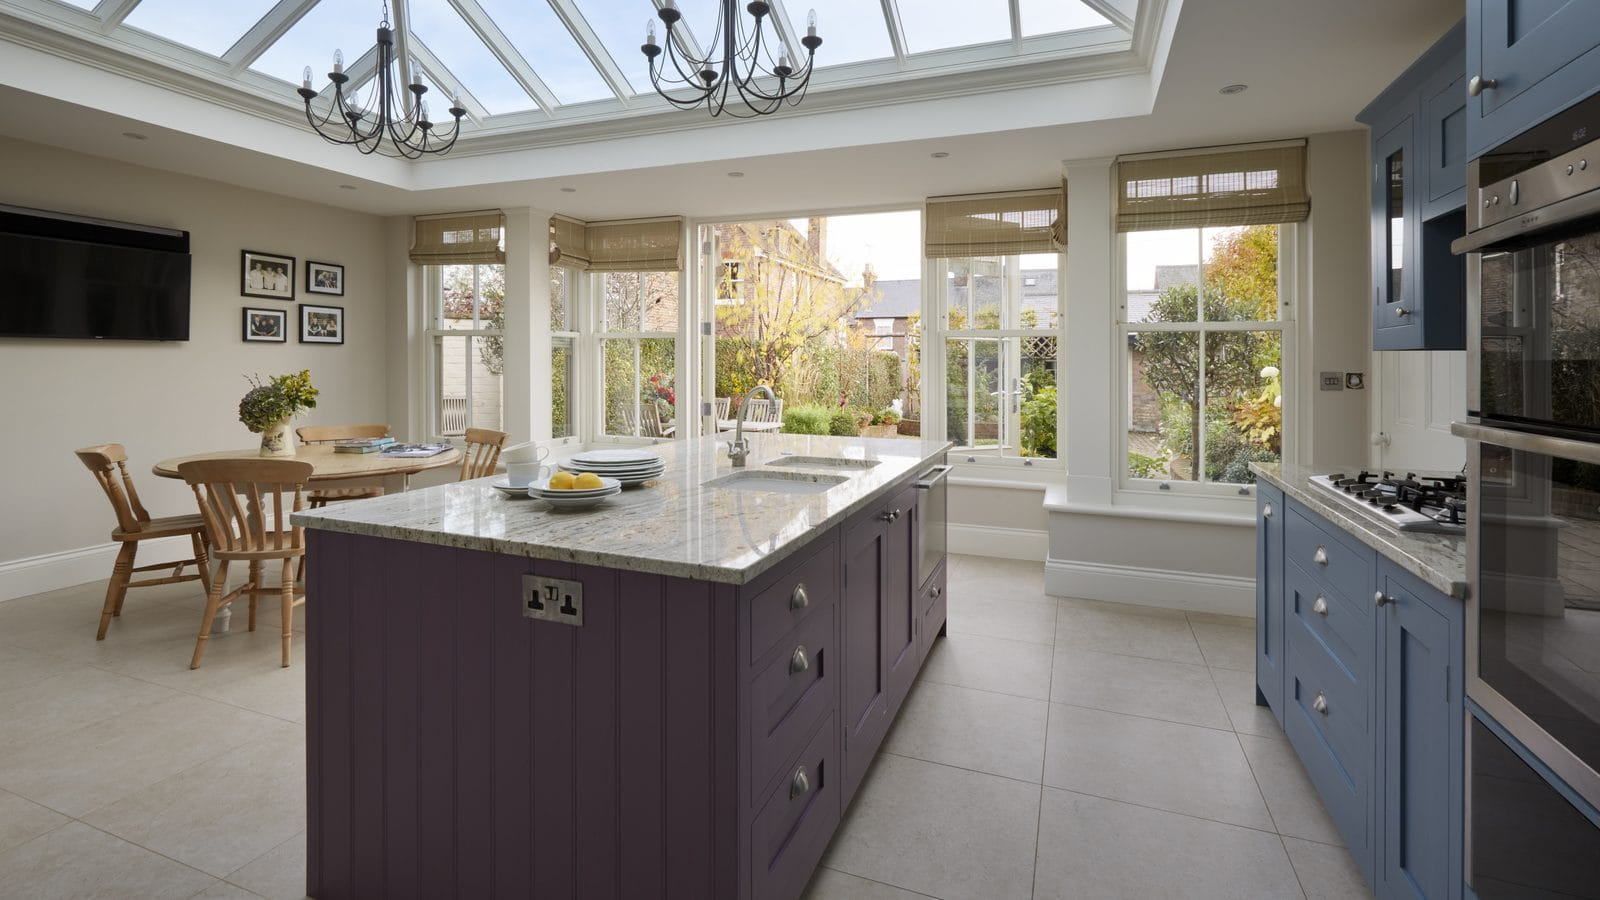 Replace a previously much-loved conservatory with an orangery or garden room